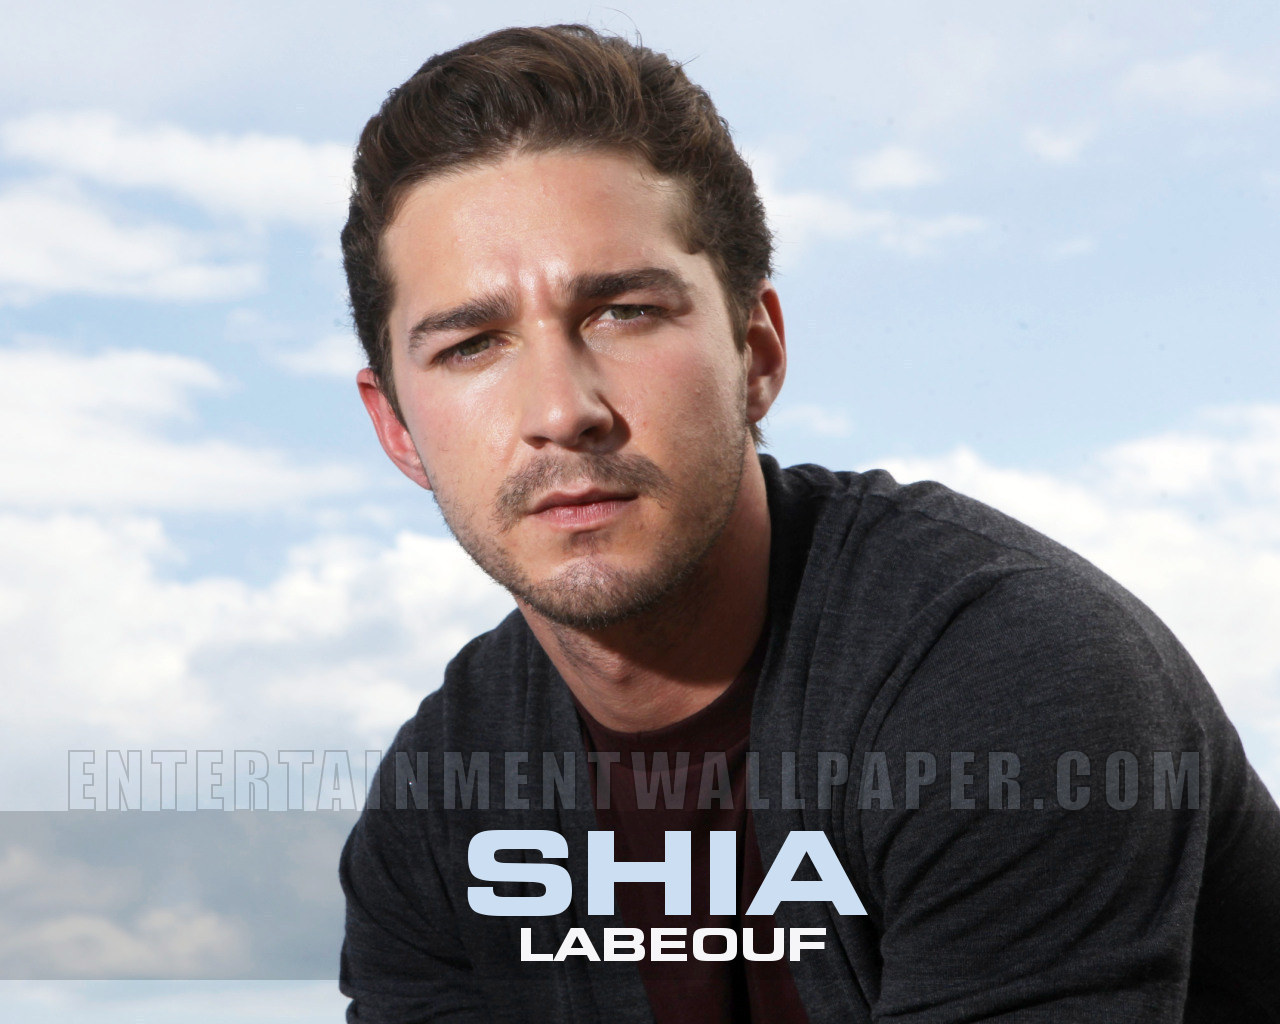 Shia LaBeouf Images Labeouf HD Wallpaper And Background Photos